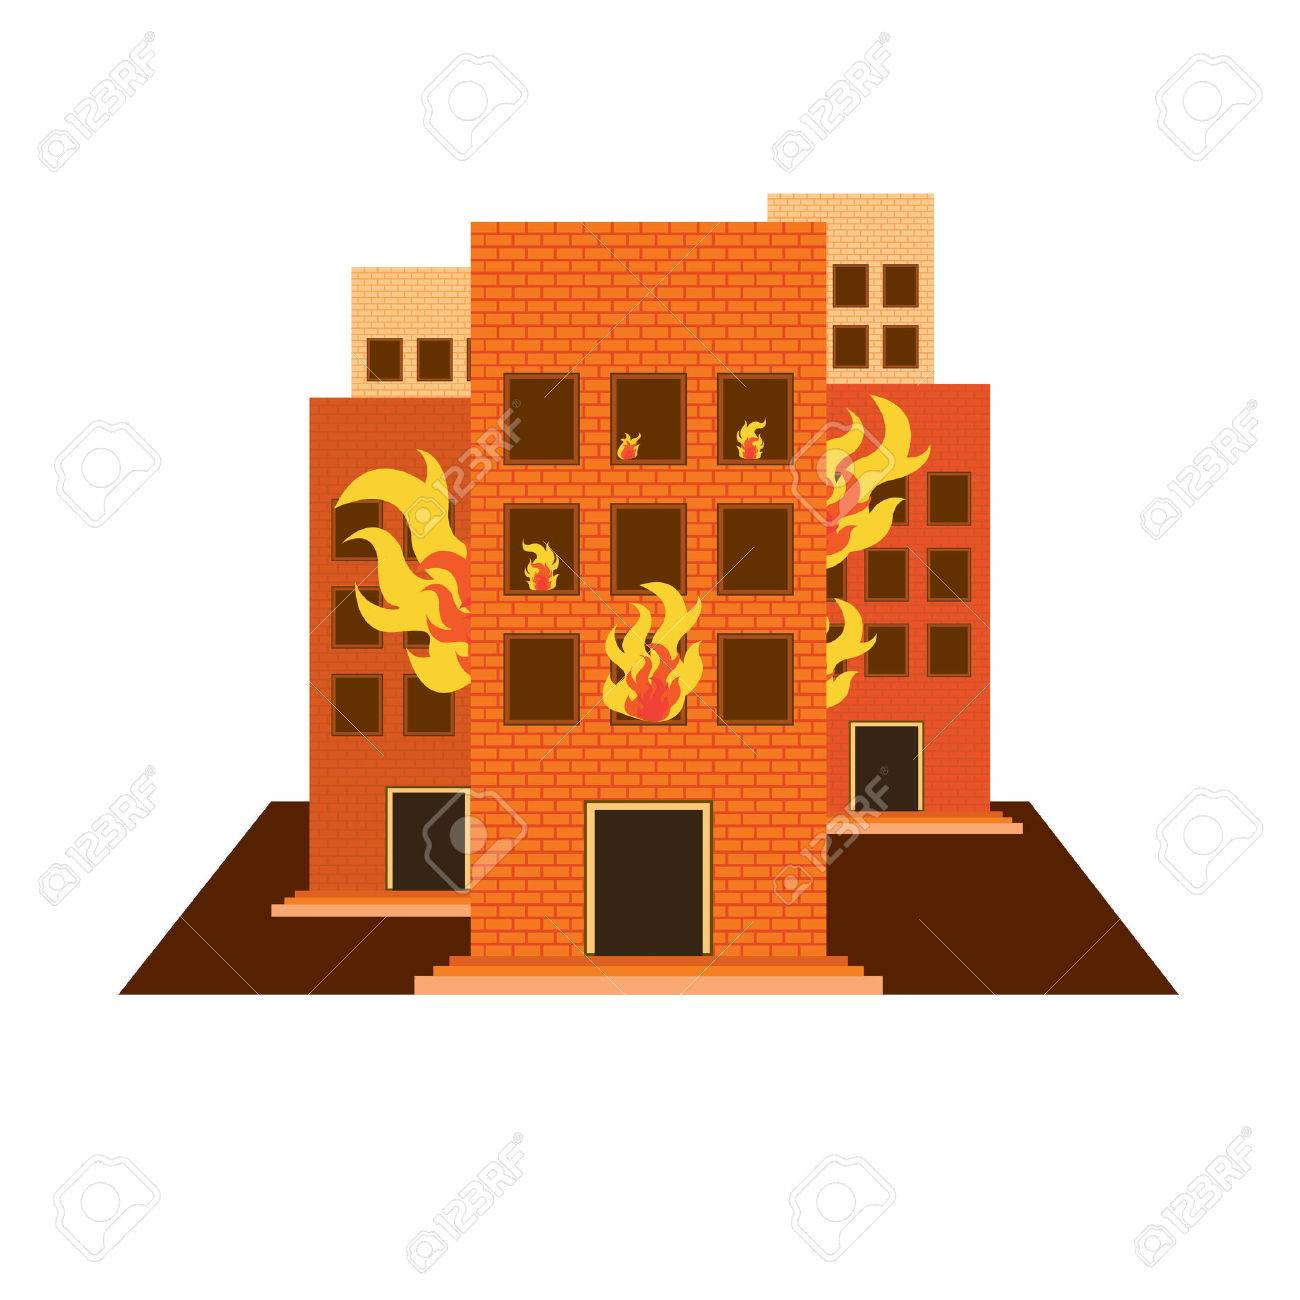 vectors set building fire colour and white on white back ground.